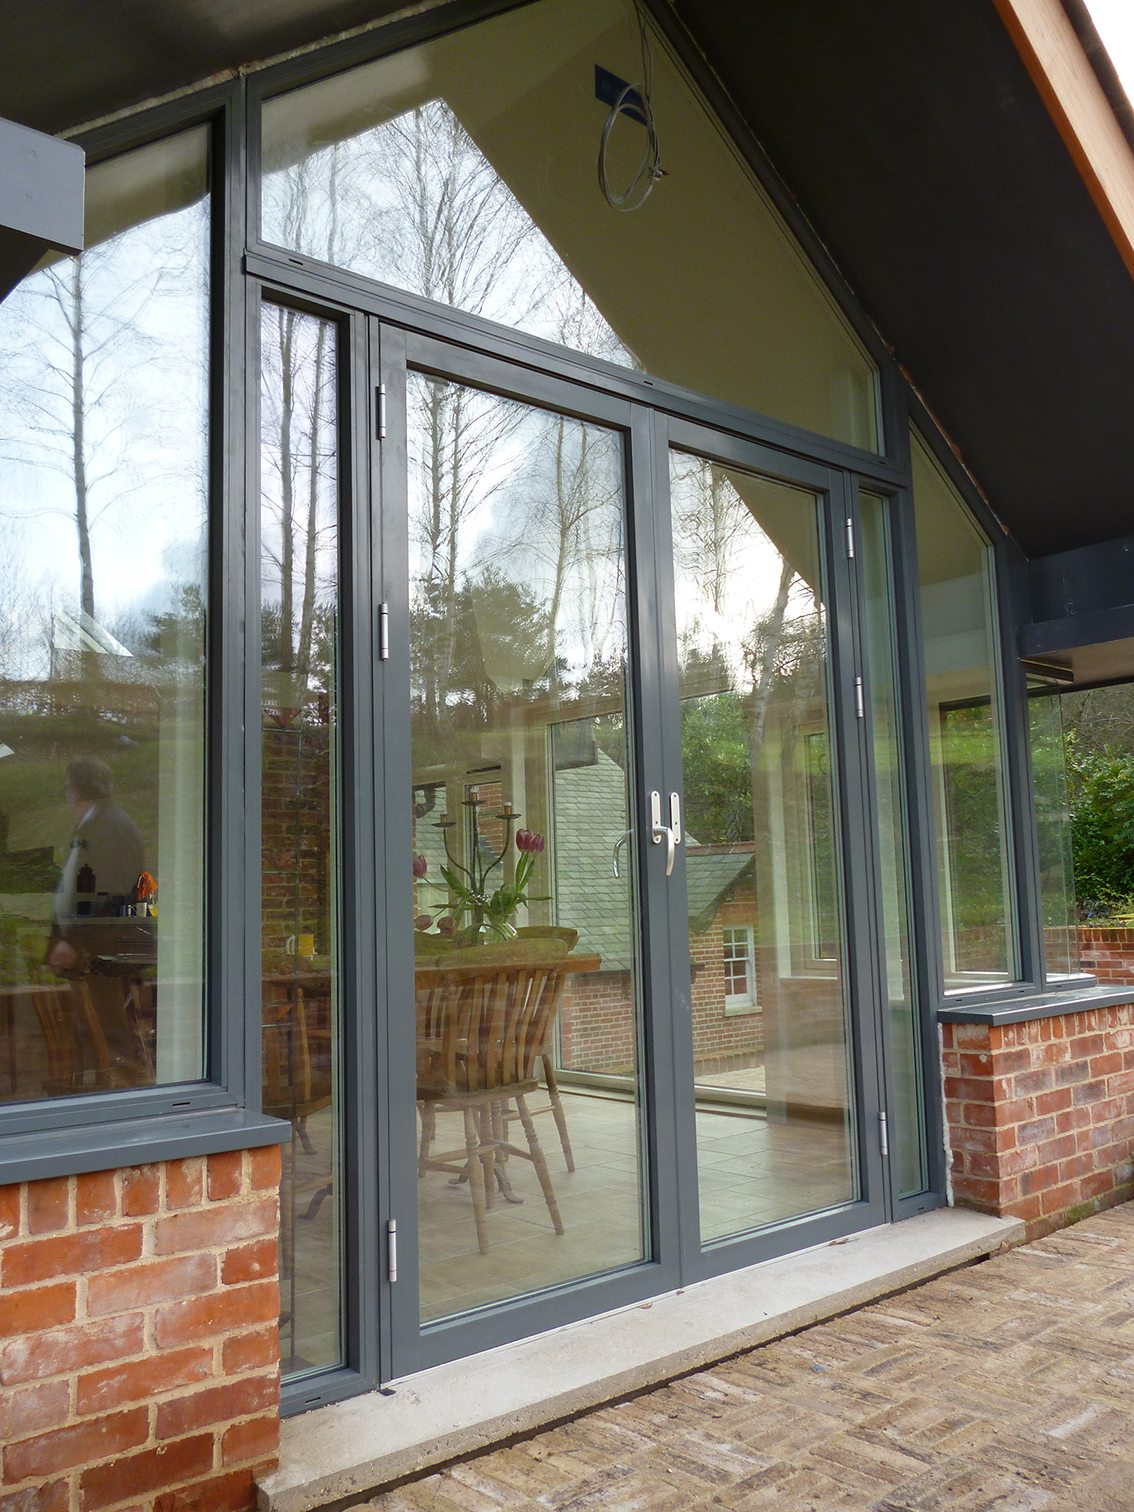 Westcoast Windows Swedish composite windows and doors – finishes and accessories to suit your style